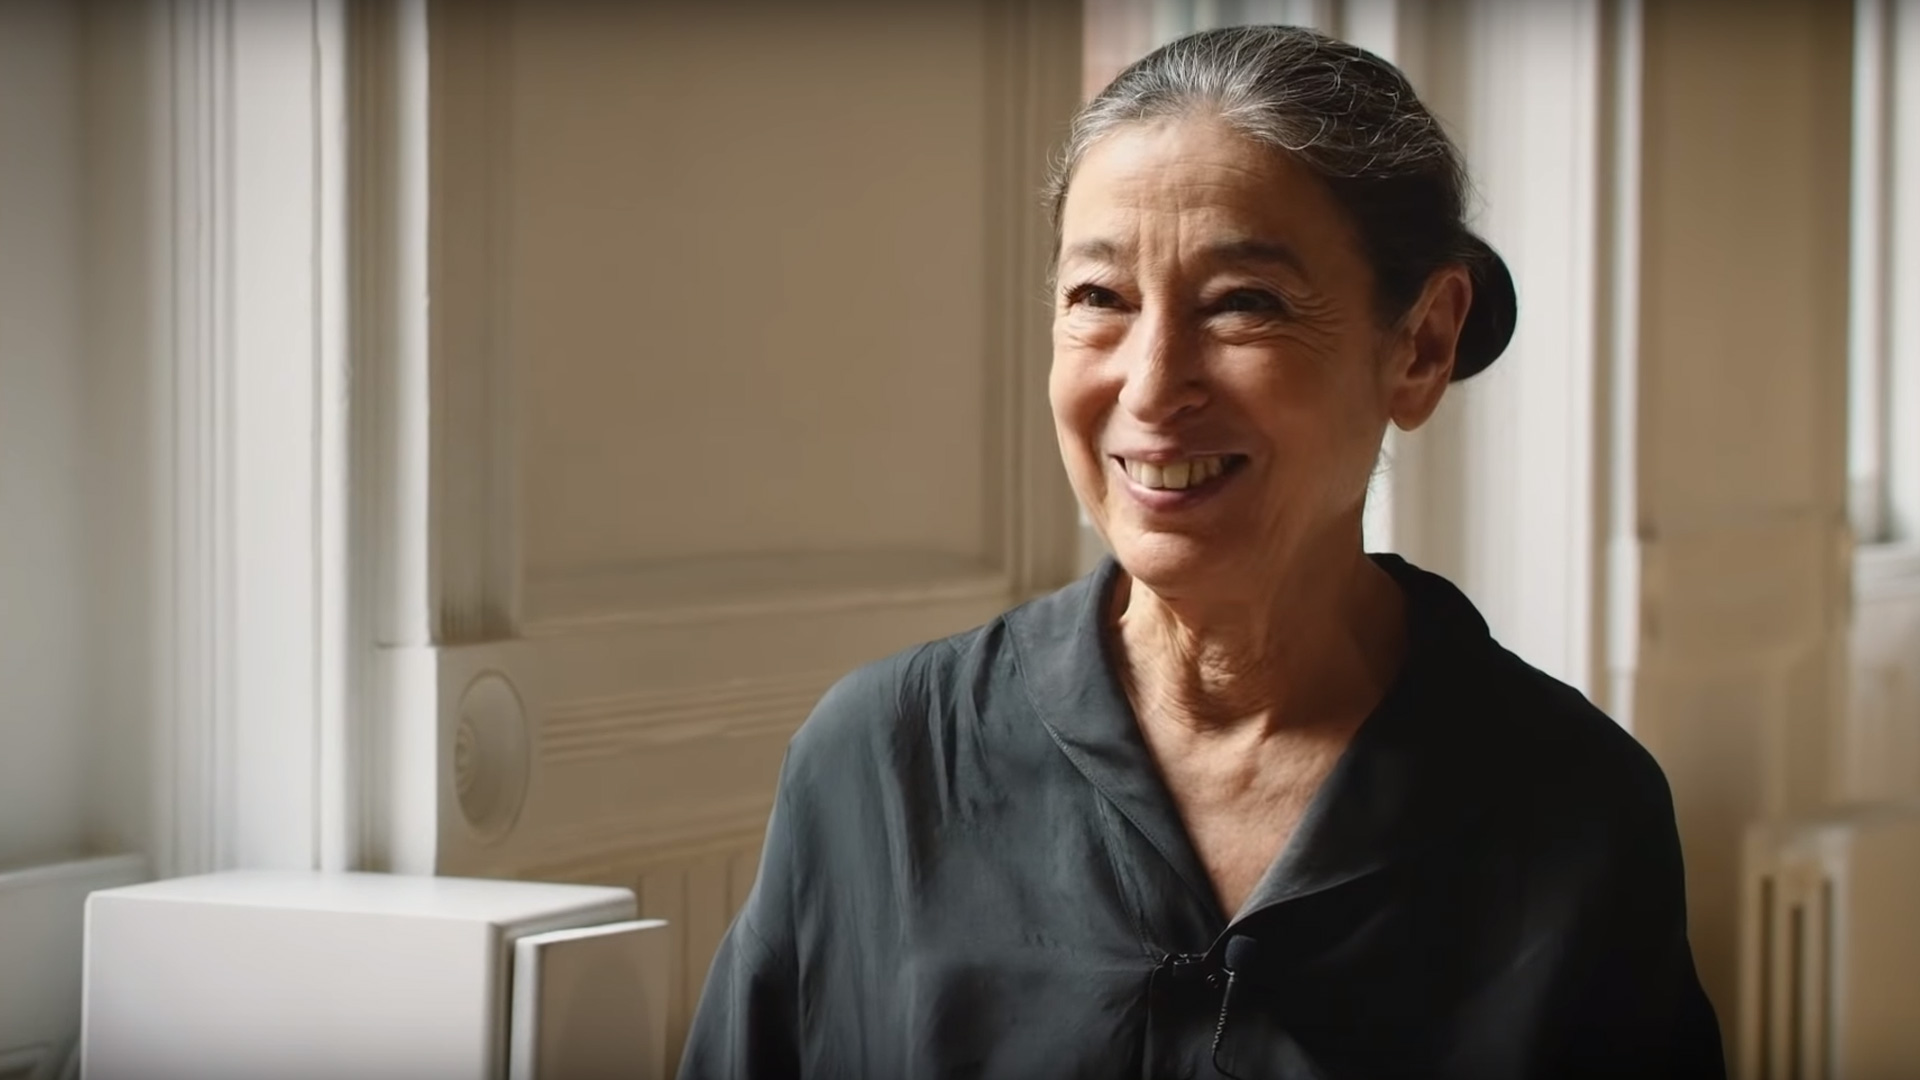 Inside the house of celebrated artist, author, sculptor and designer Michele Oka Doner, in New York City, United States | Michele Oka Doner | In Residence | NOWNESS | STIRworld